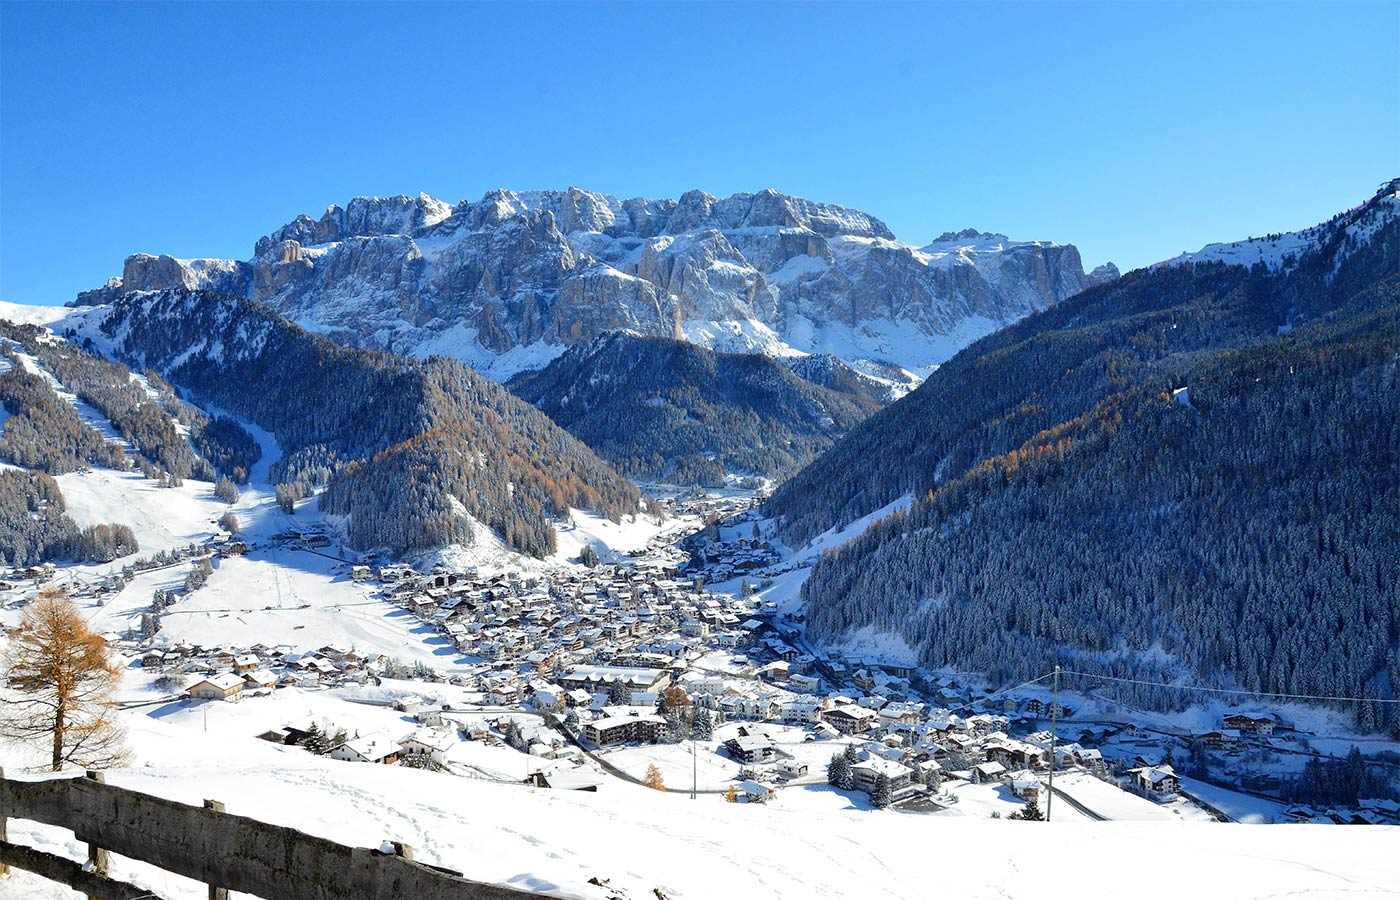 View of the snow-covered village from Chalet Dlaces